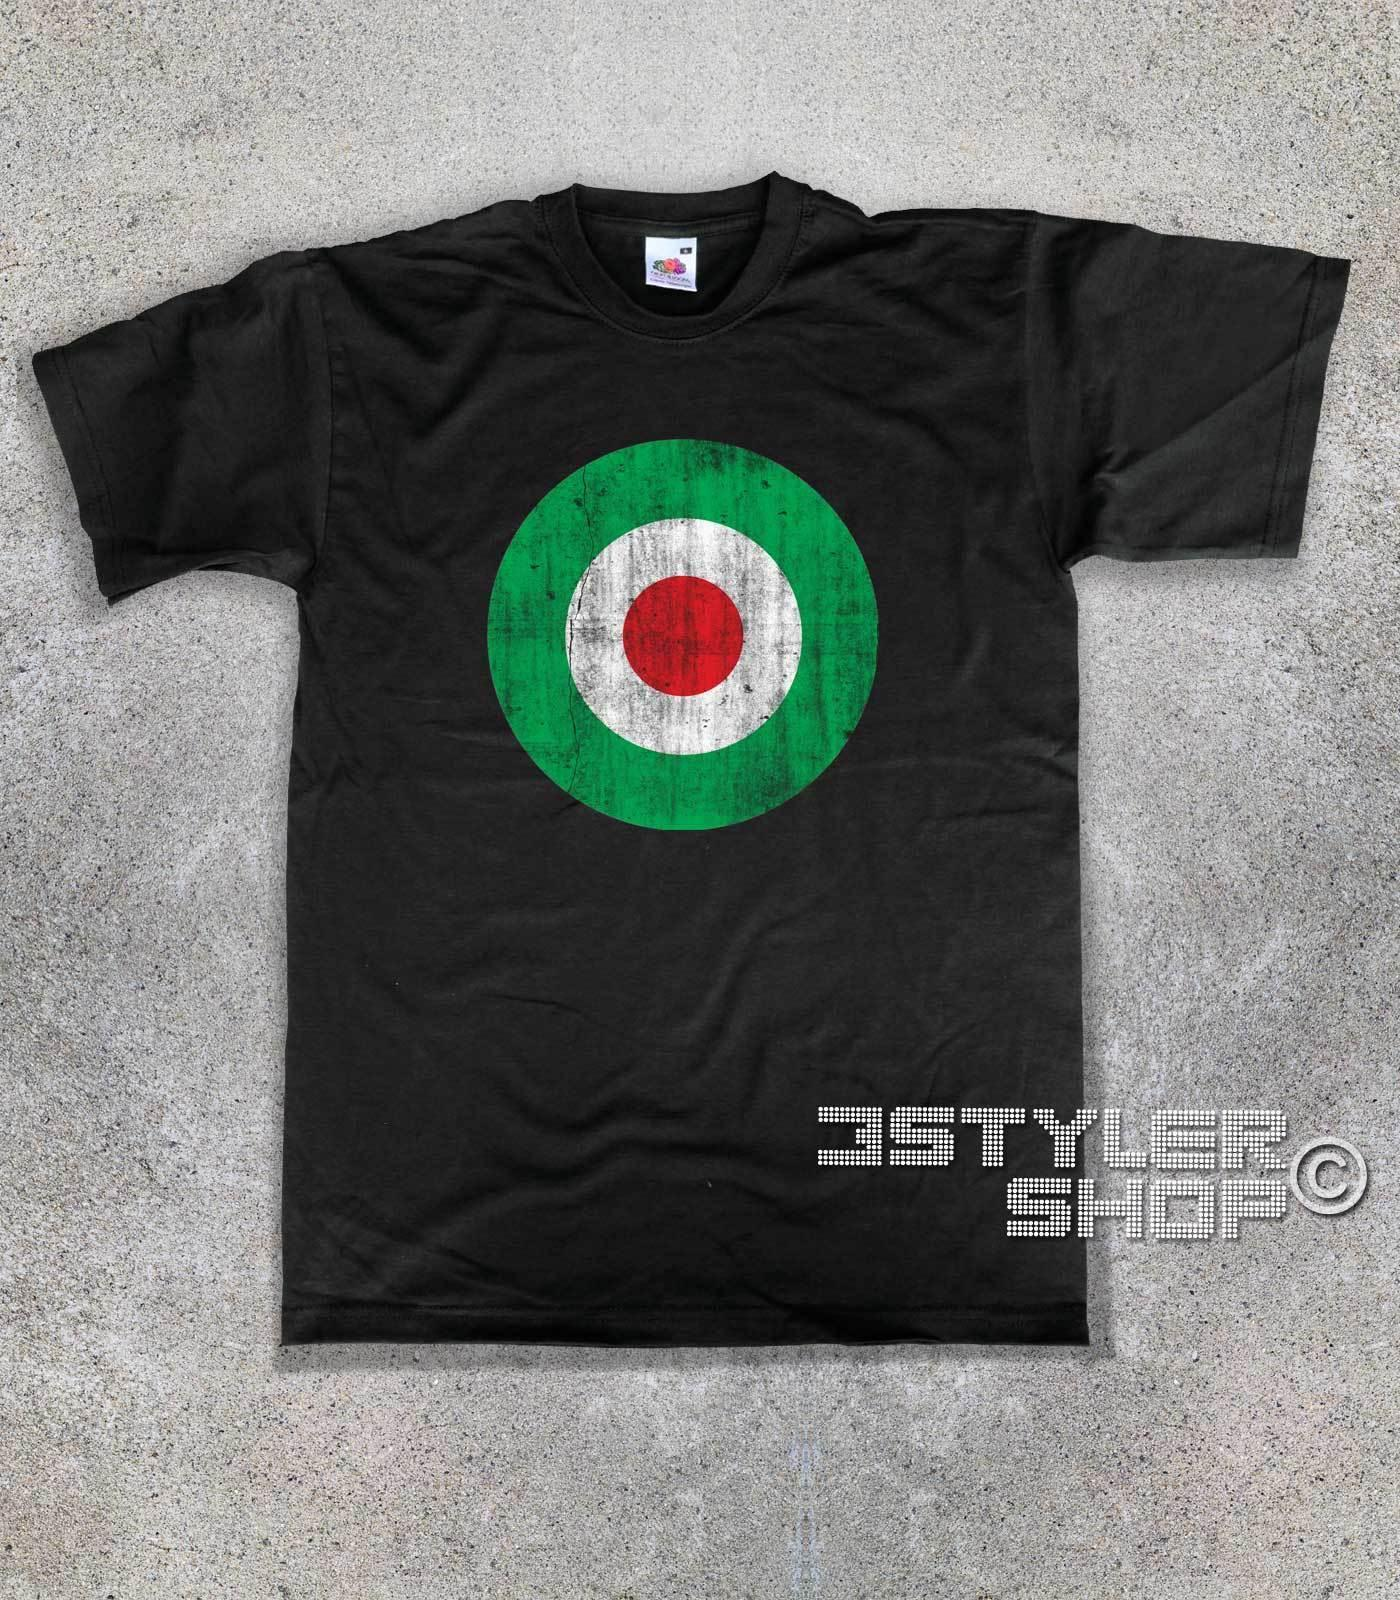 64dd3363640 Men S T SHIRT TARGET ITALIE ANTIQUE Colours Flag Italian VESPA Vintage  Funny Unisex Casual Tee Gift T Shirt Online T Shirt Shopping Print On T  Shirt From ...